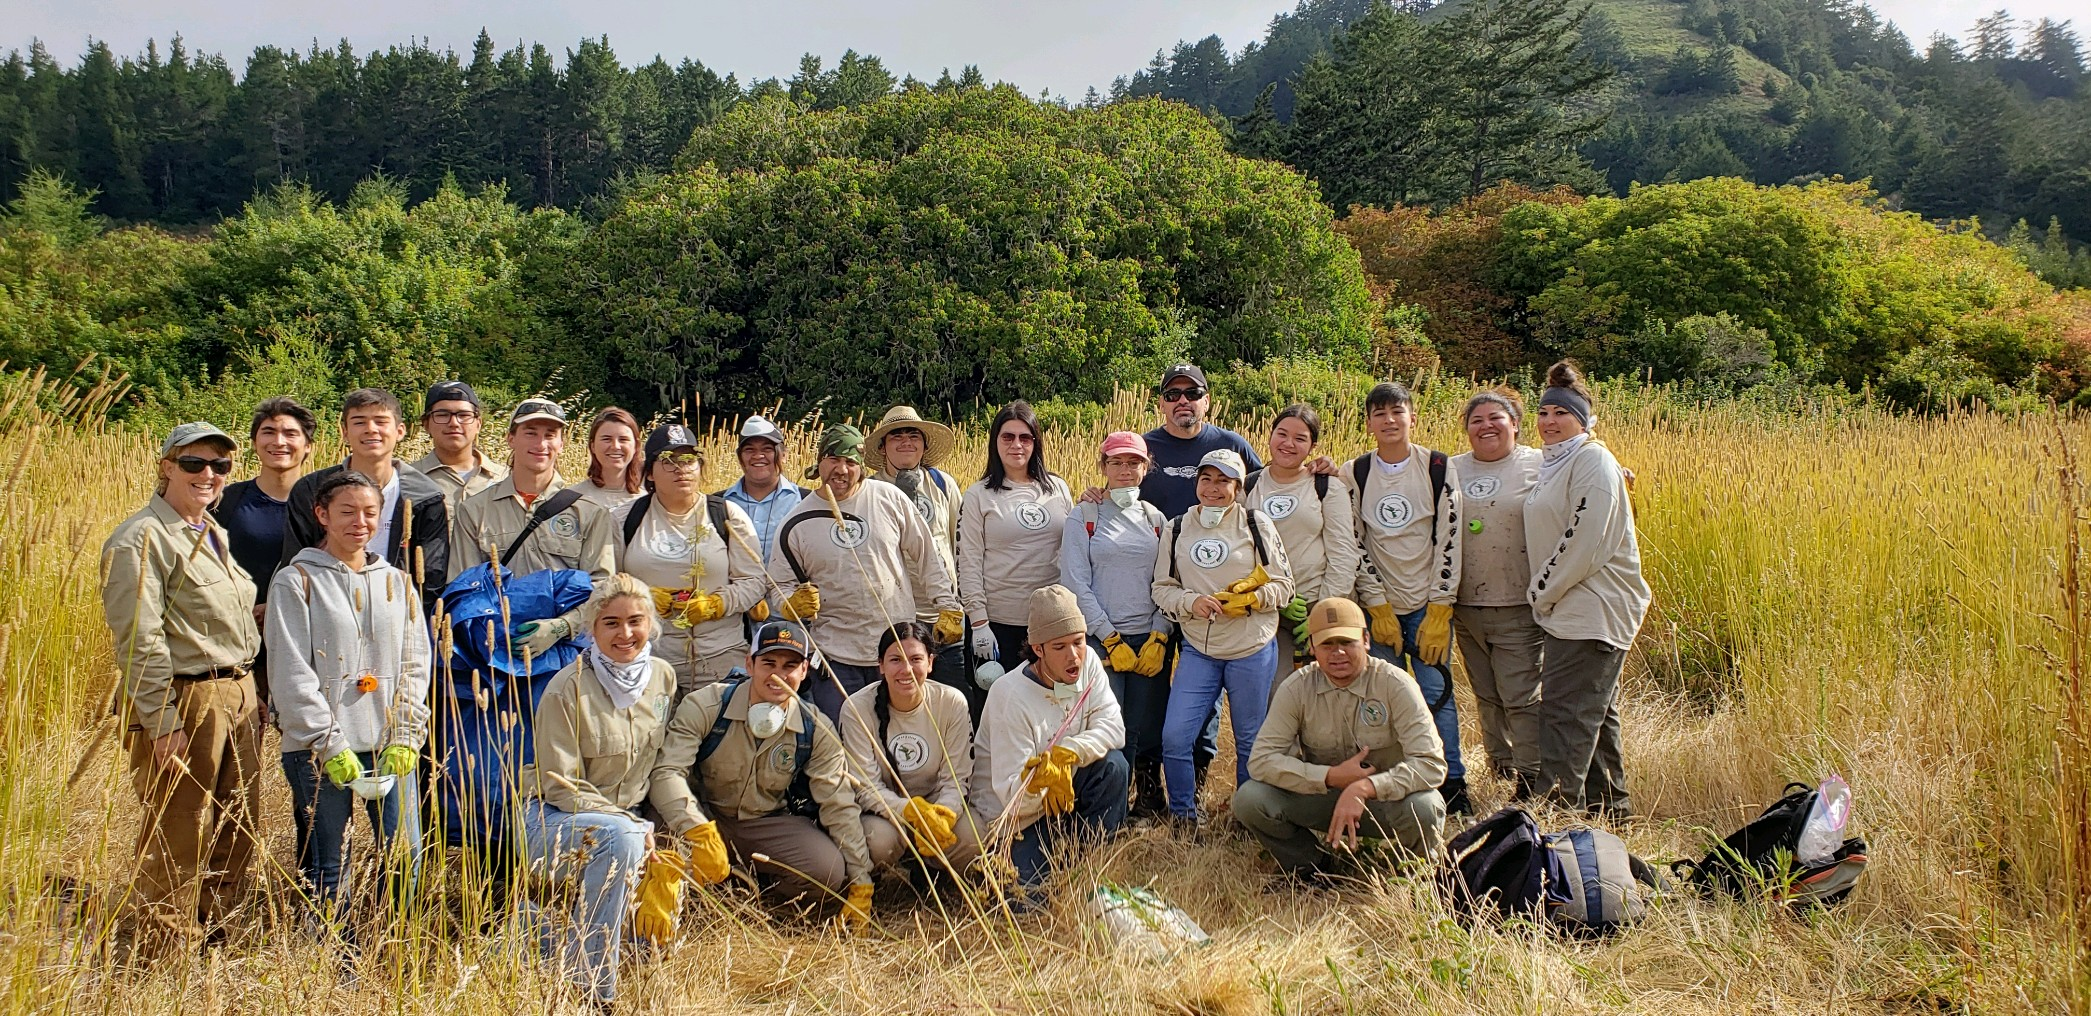 AMLT Native Stewards and interns after a day of poison hemlock removal.